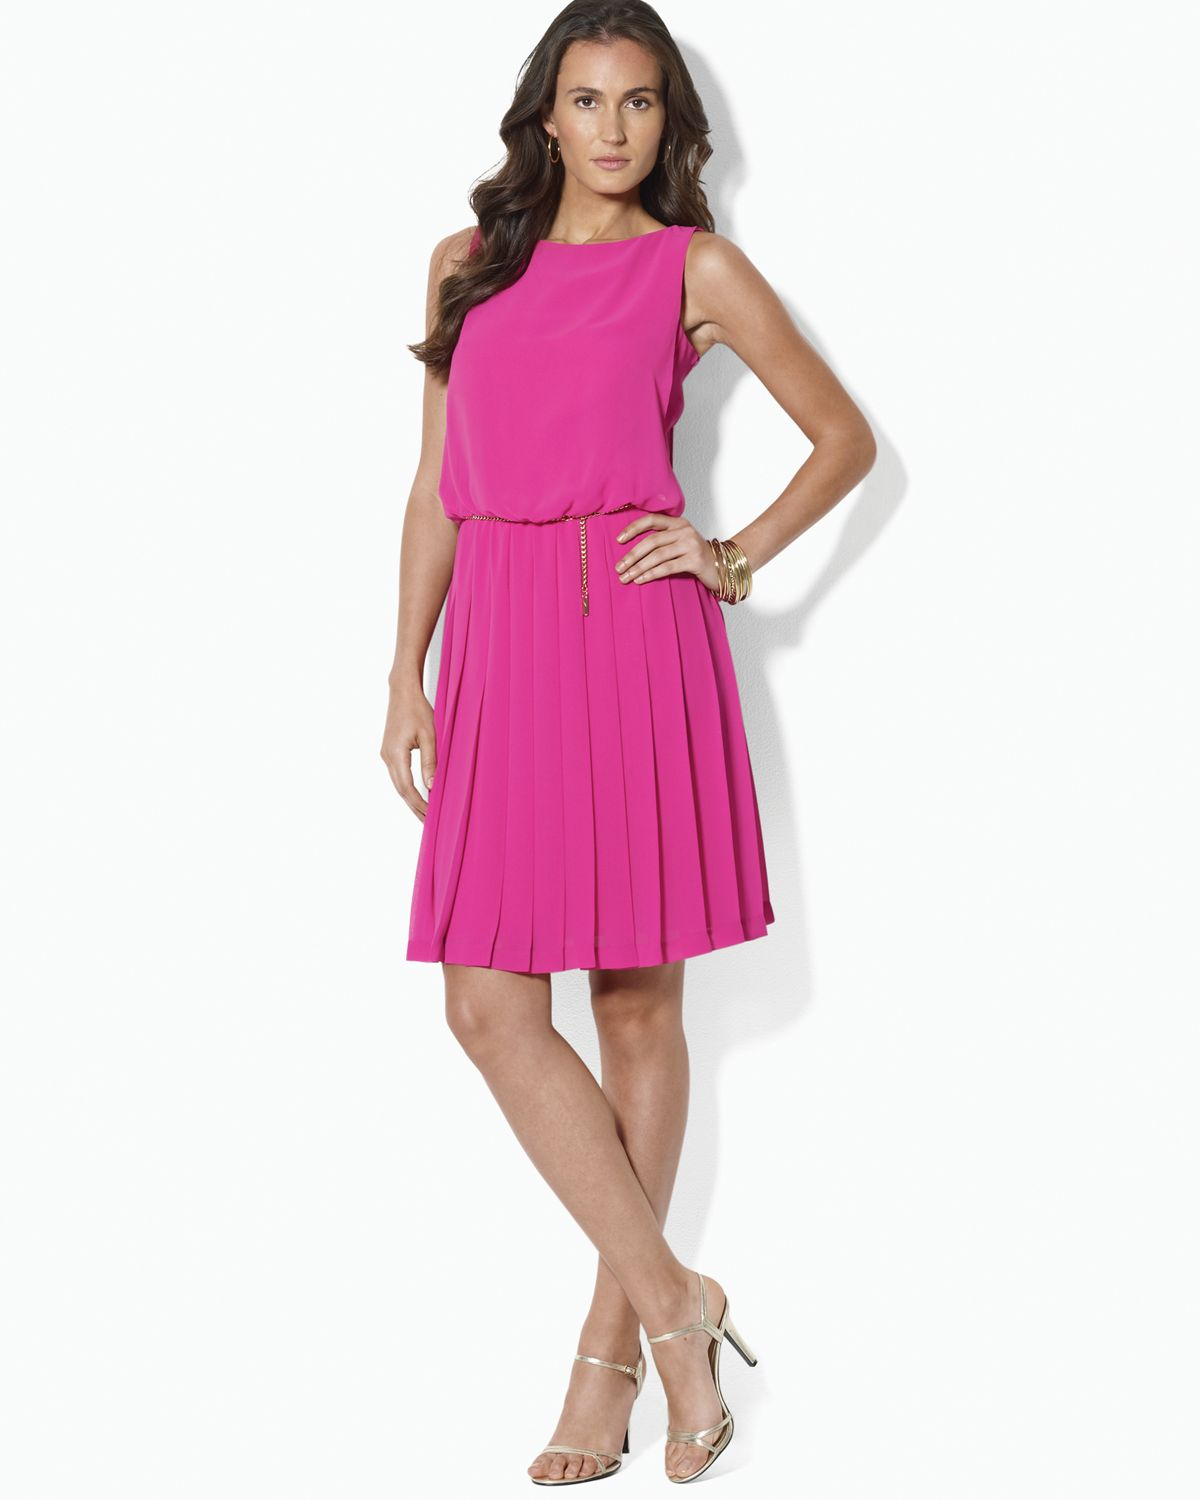 Ralph lauren Sleeveless Pleated Dress in Pink  Lyst